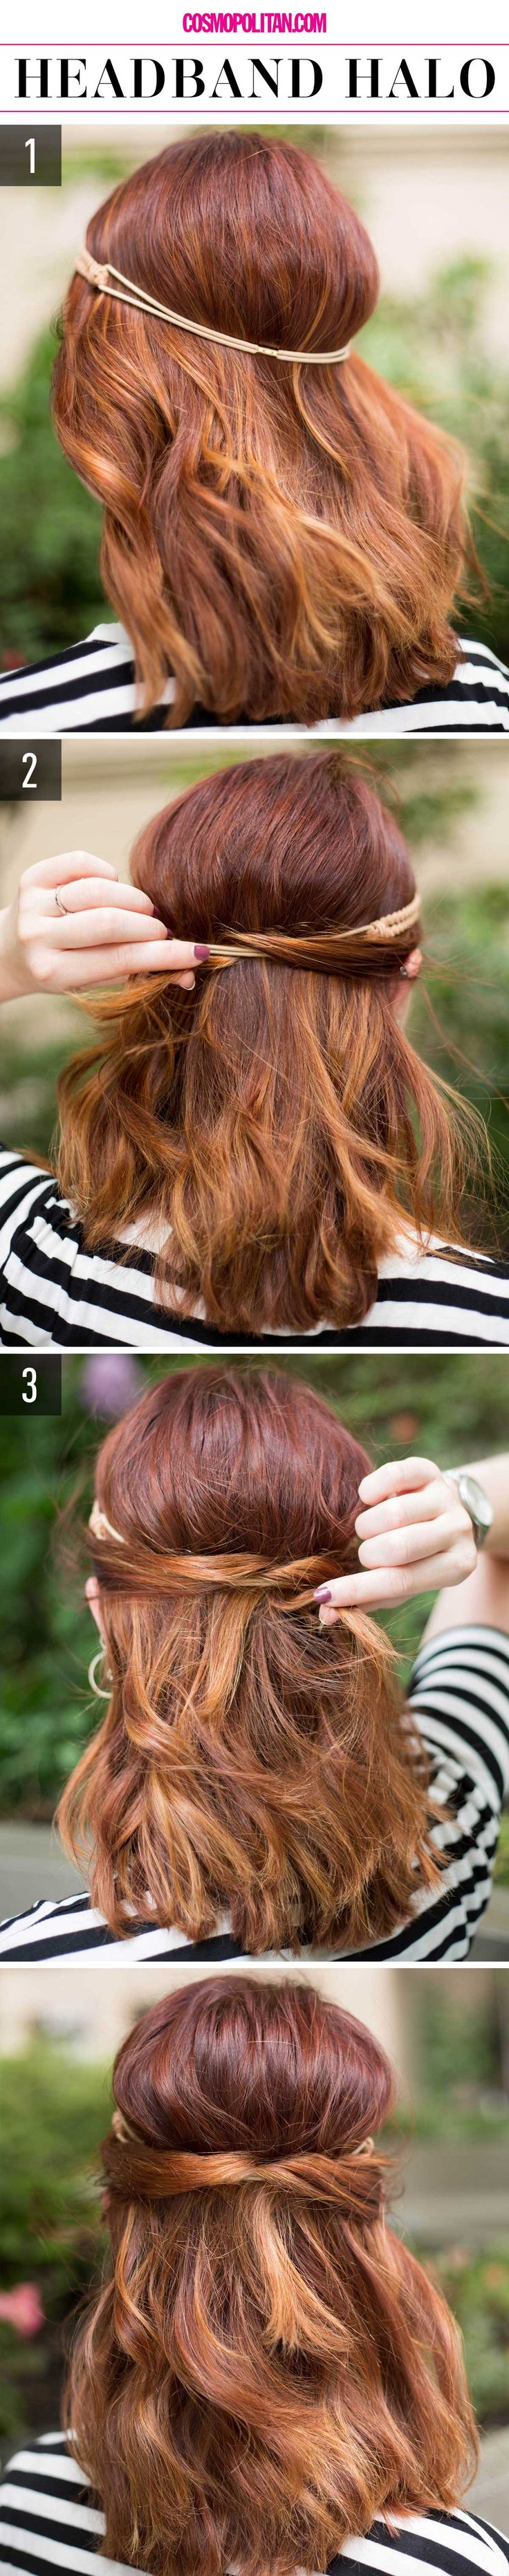 15 Super-Easy Hairstyles for Lazy Girls Who Can't Even........  REGISTER FOR THE RMR4 INTERNATIONAL.INFO PRODUCT LINE SHOWCASE WEBINAR BROADCAST at: www.rmr4international.info/500_tasty_diabetic_recipes.htm    .......      Don't miss our webinar!❤........